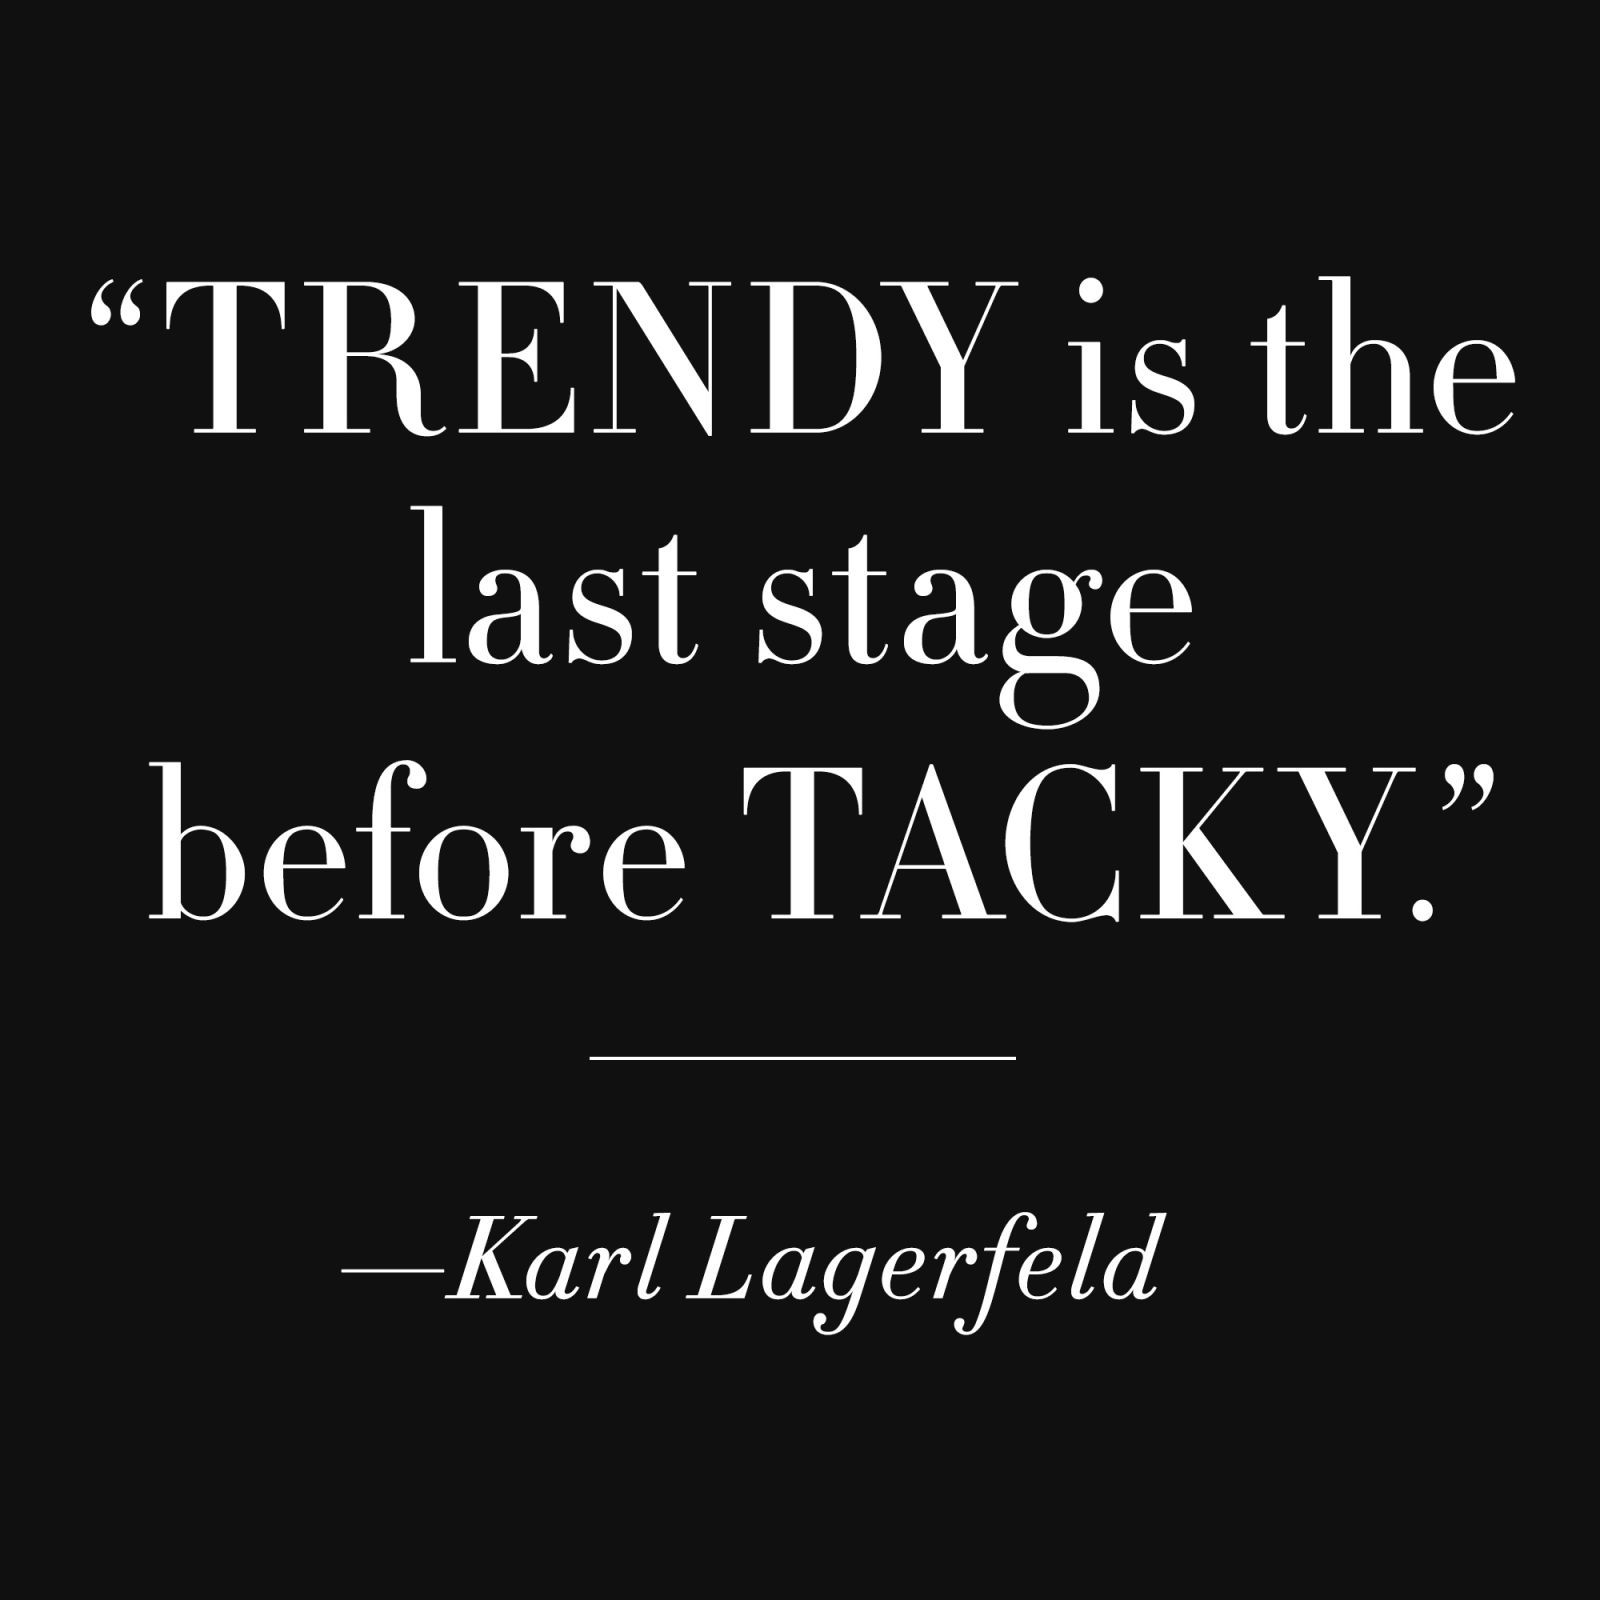 50 Famous Fashion Quotes from Karl Lagerfeld, Coco Chanel